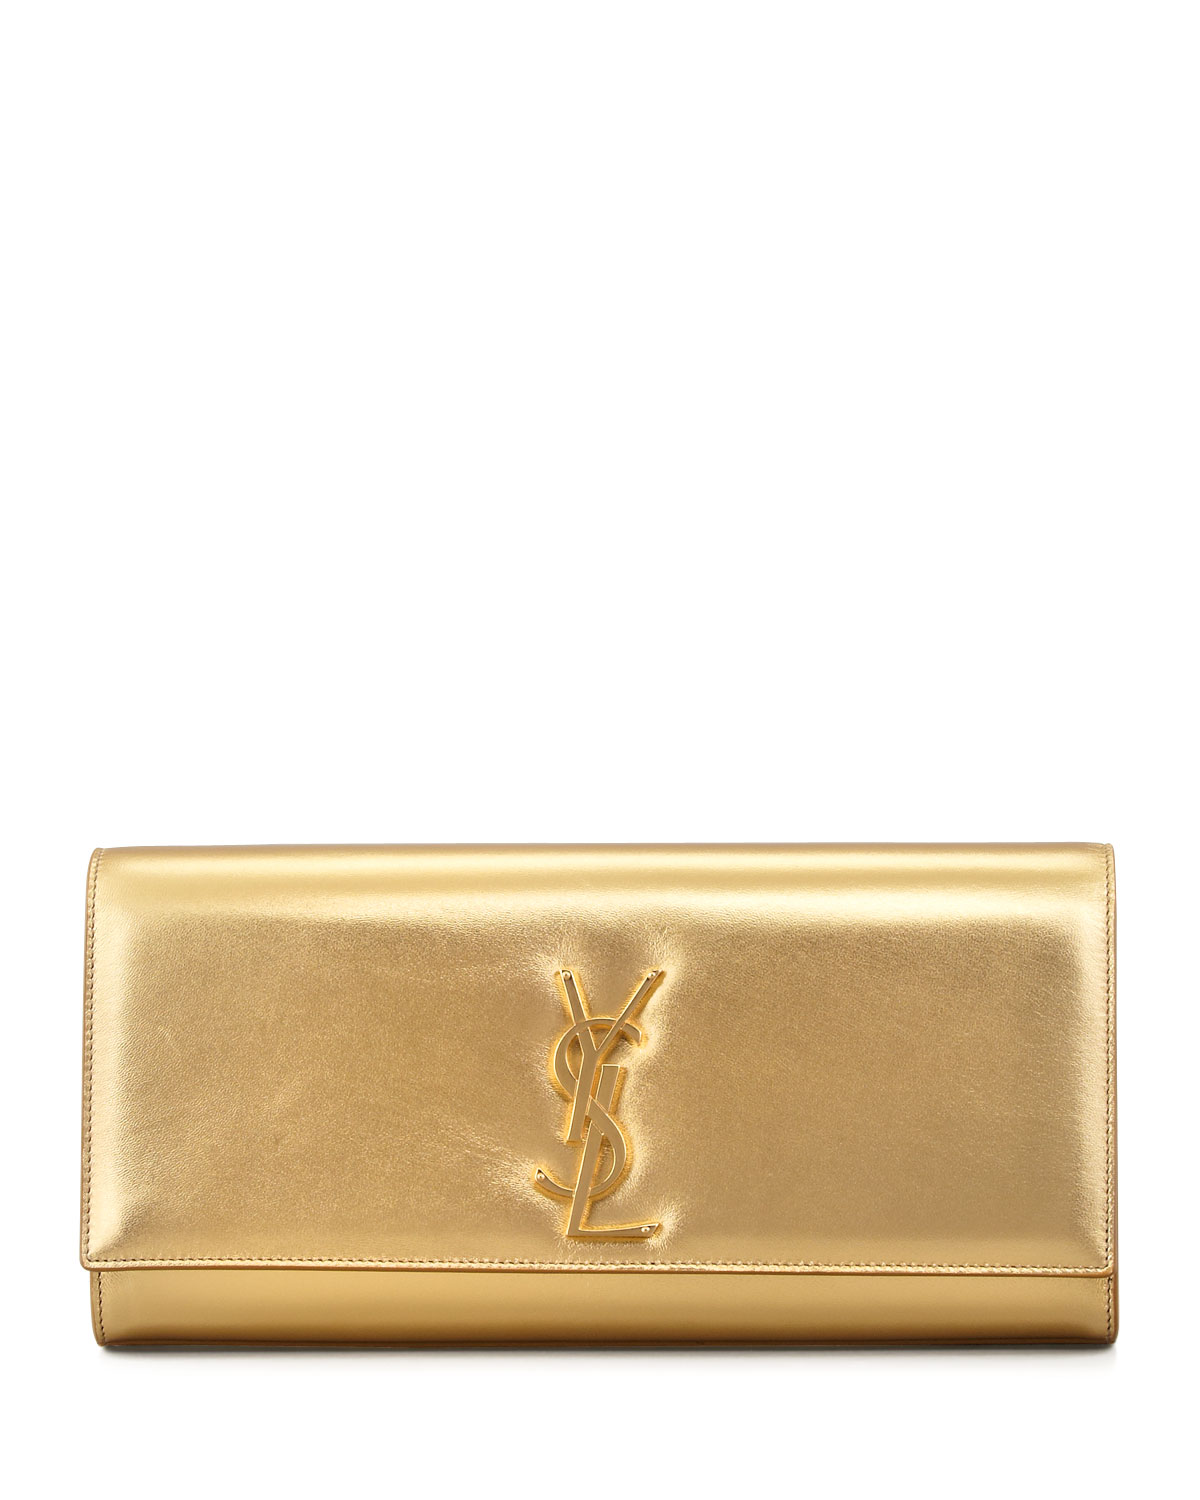 61d6c7532374 Saint Laurent Cassandre Clutch Bag, Gold | Neiman Marcus